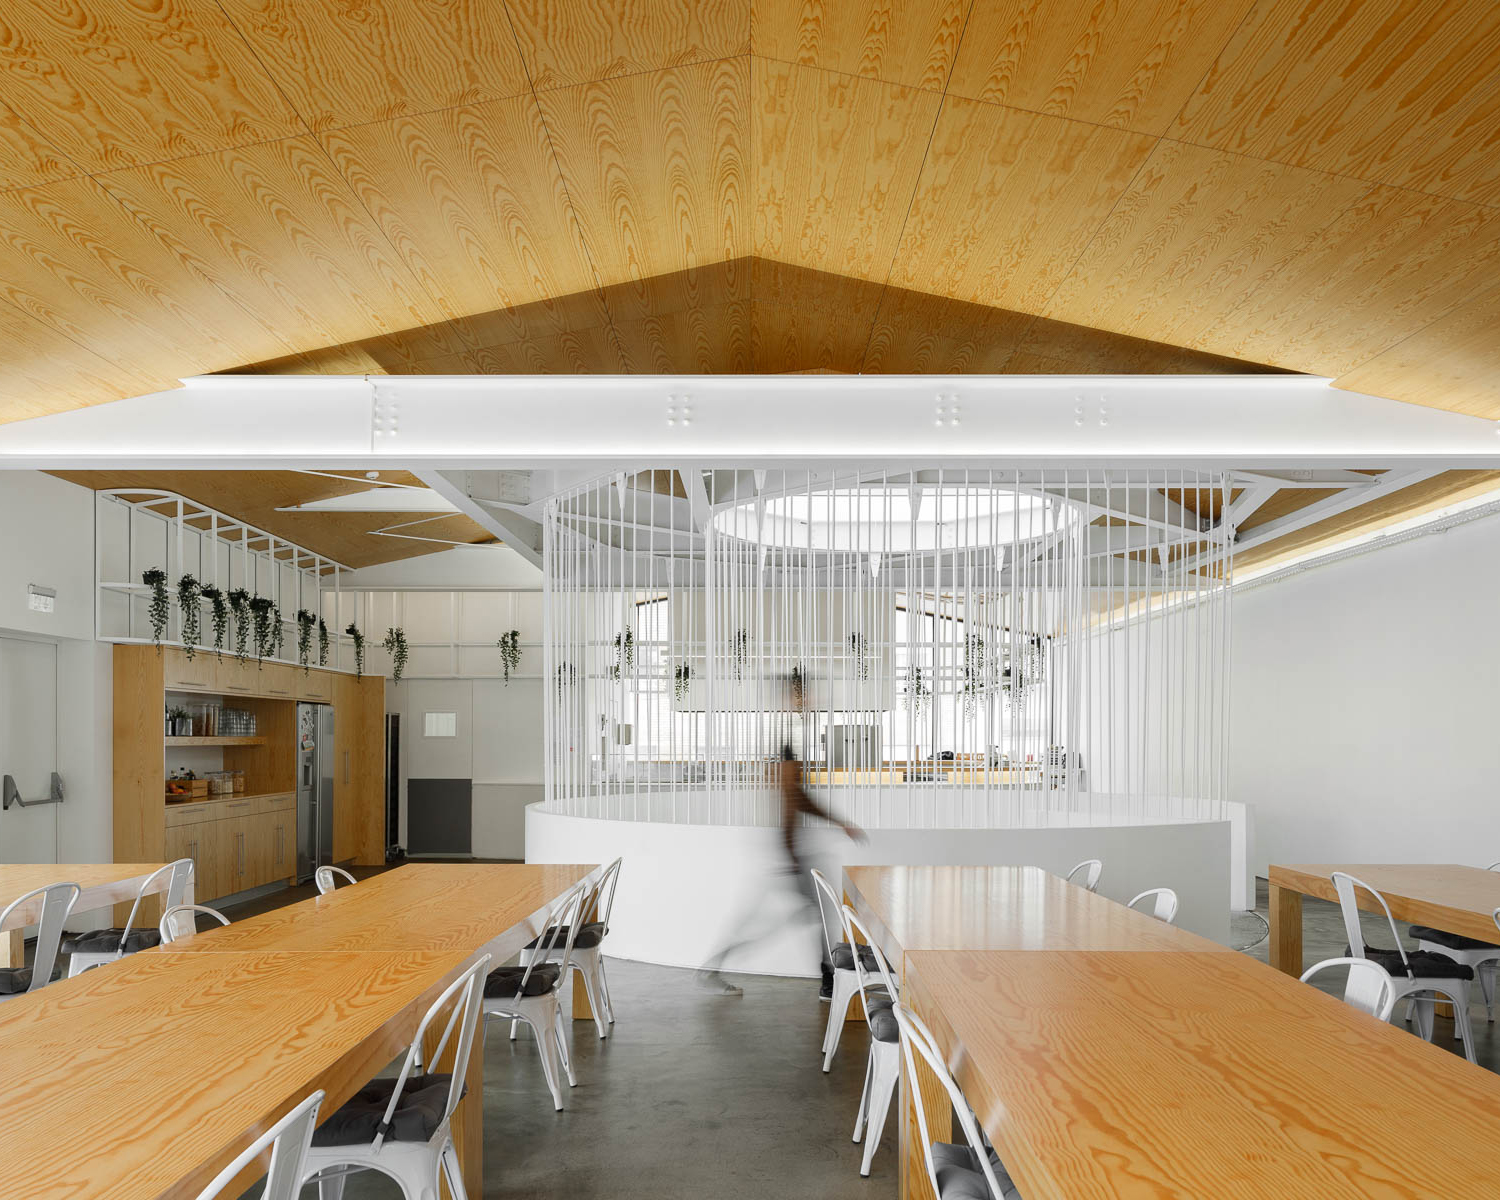 View of dining area with wooden ceiling, wooden tables and white chairs